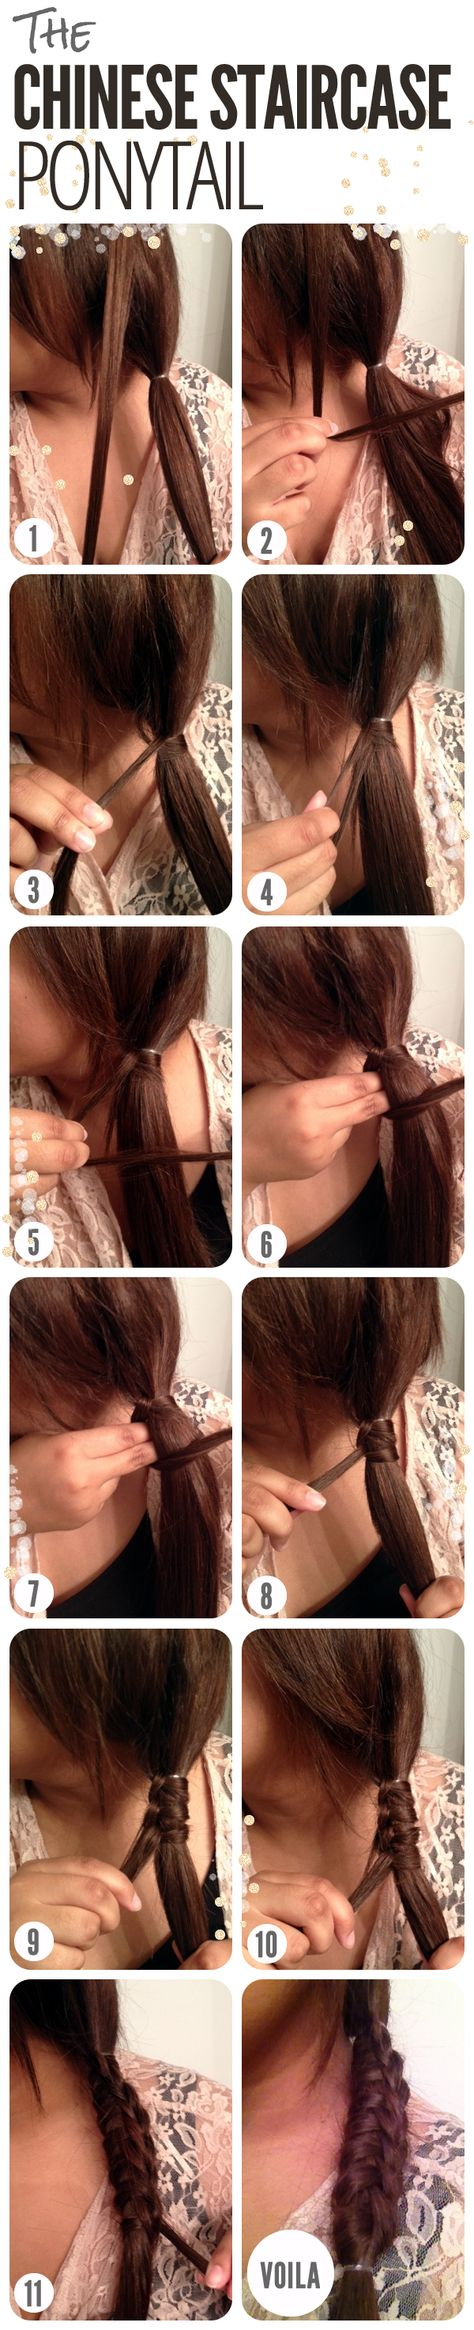 The Chinese Staircase Ponytail, pretty?